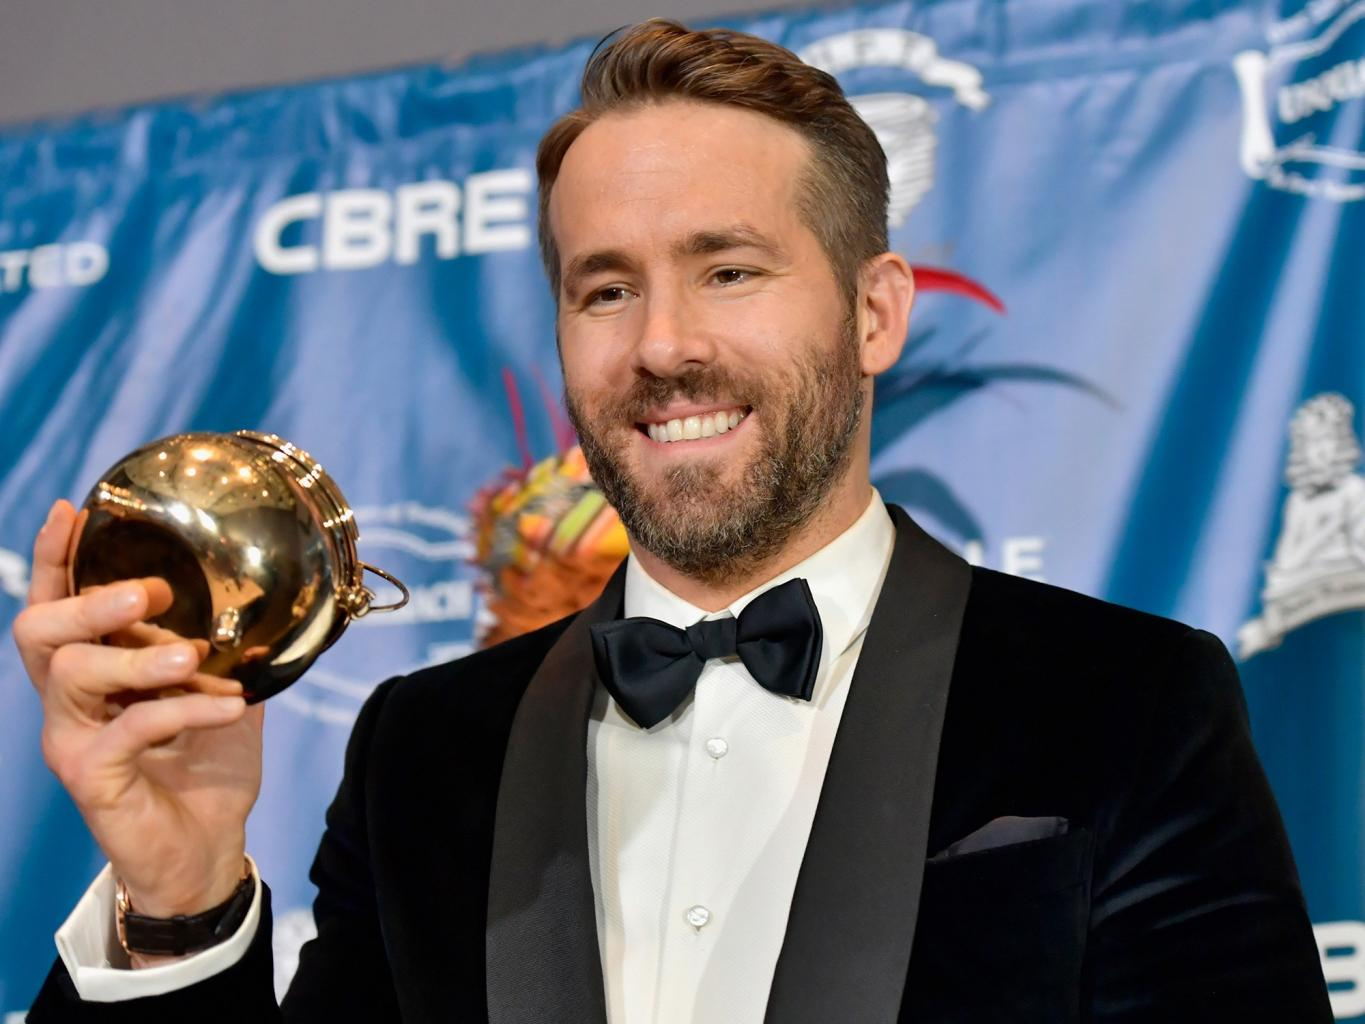 Ryan Reynolds Talks Family and Flops as He Receives Hasty Pudding Man of the Year Award